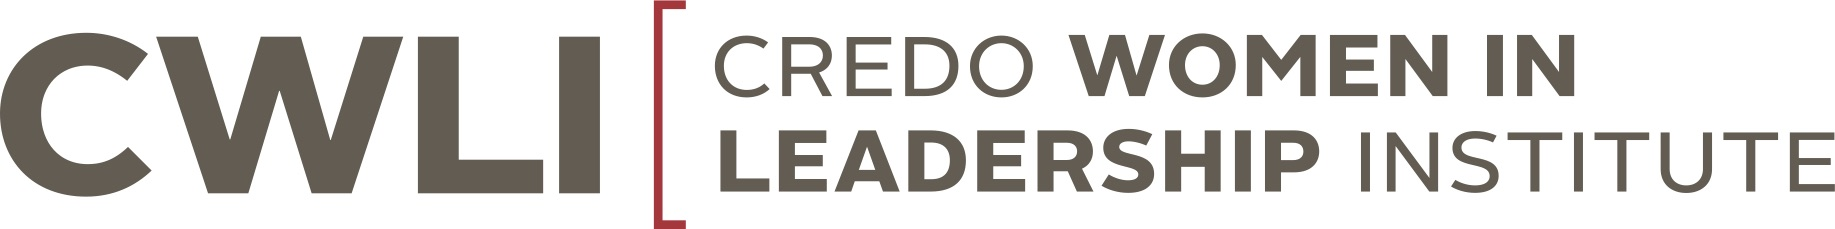 Credo Women in Leadership Institute Header Image